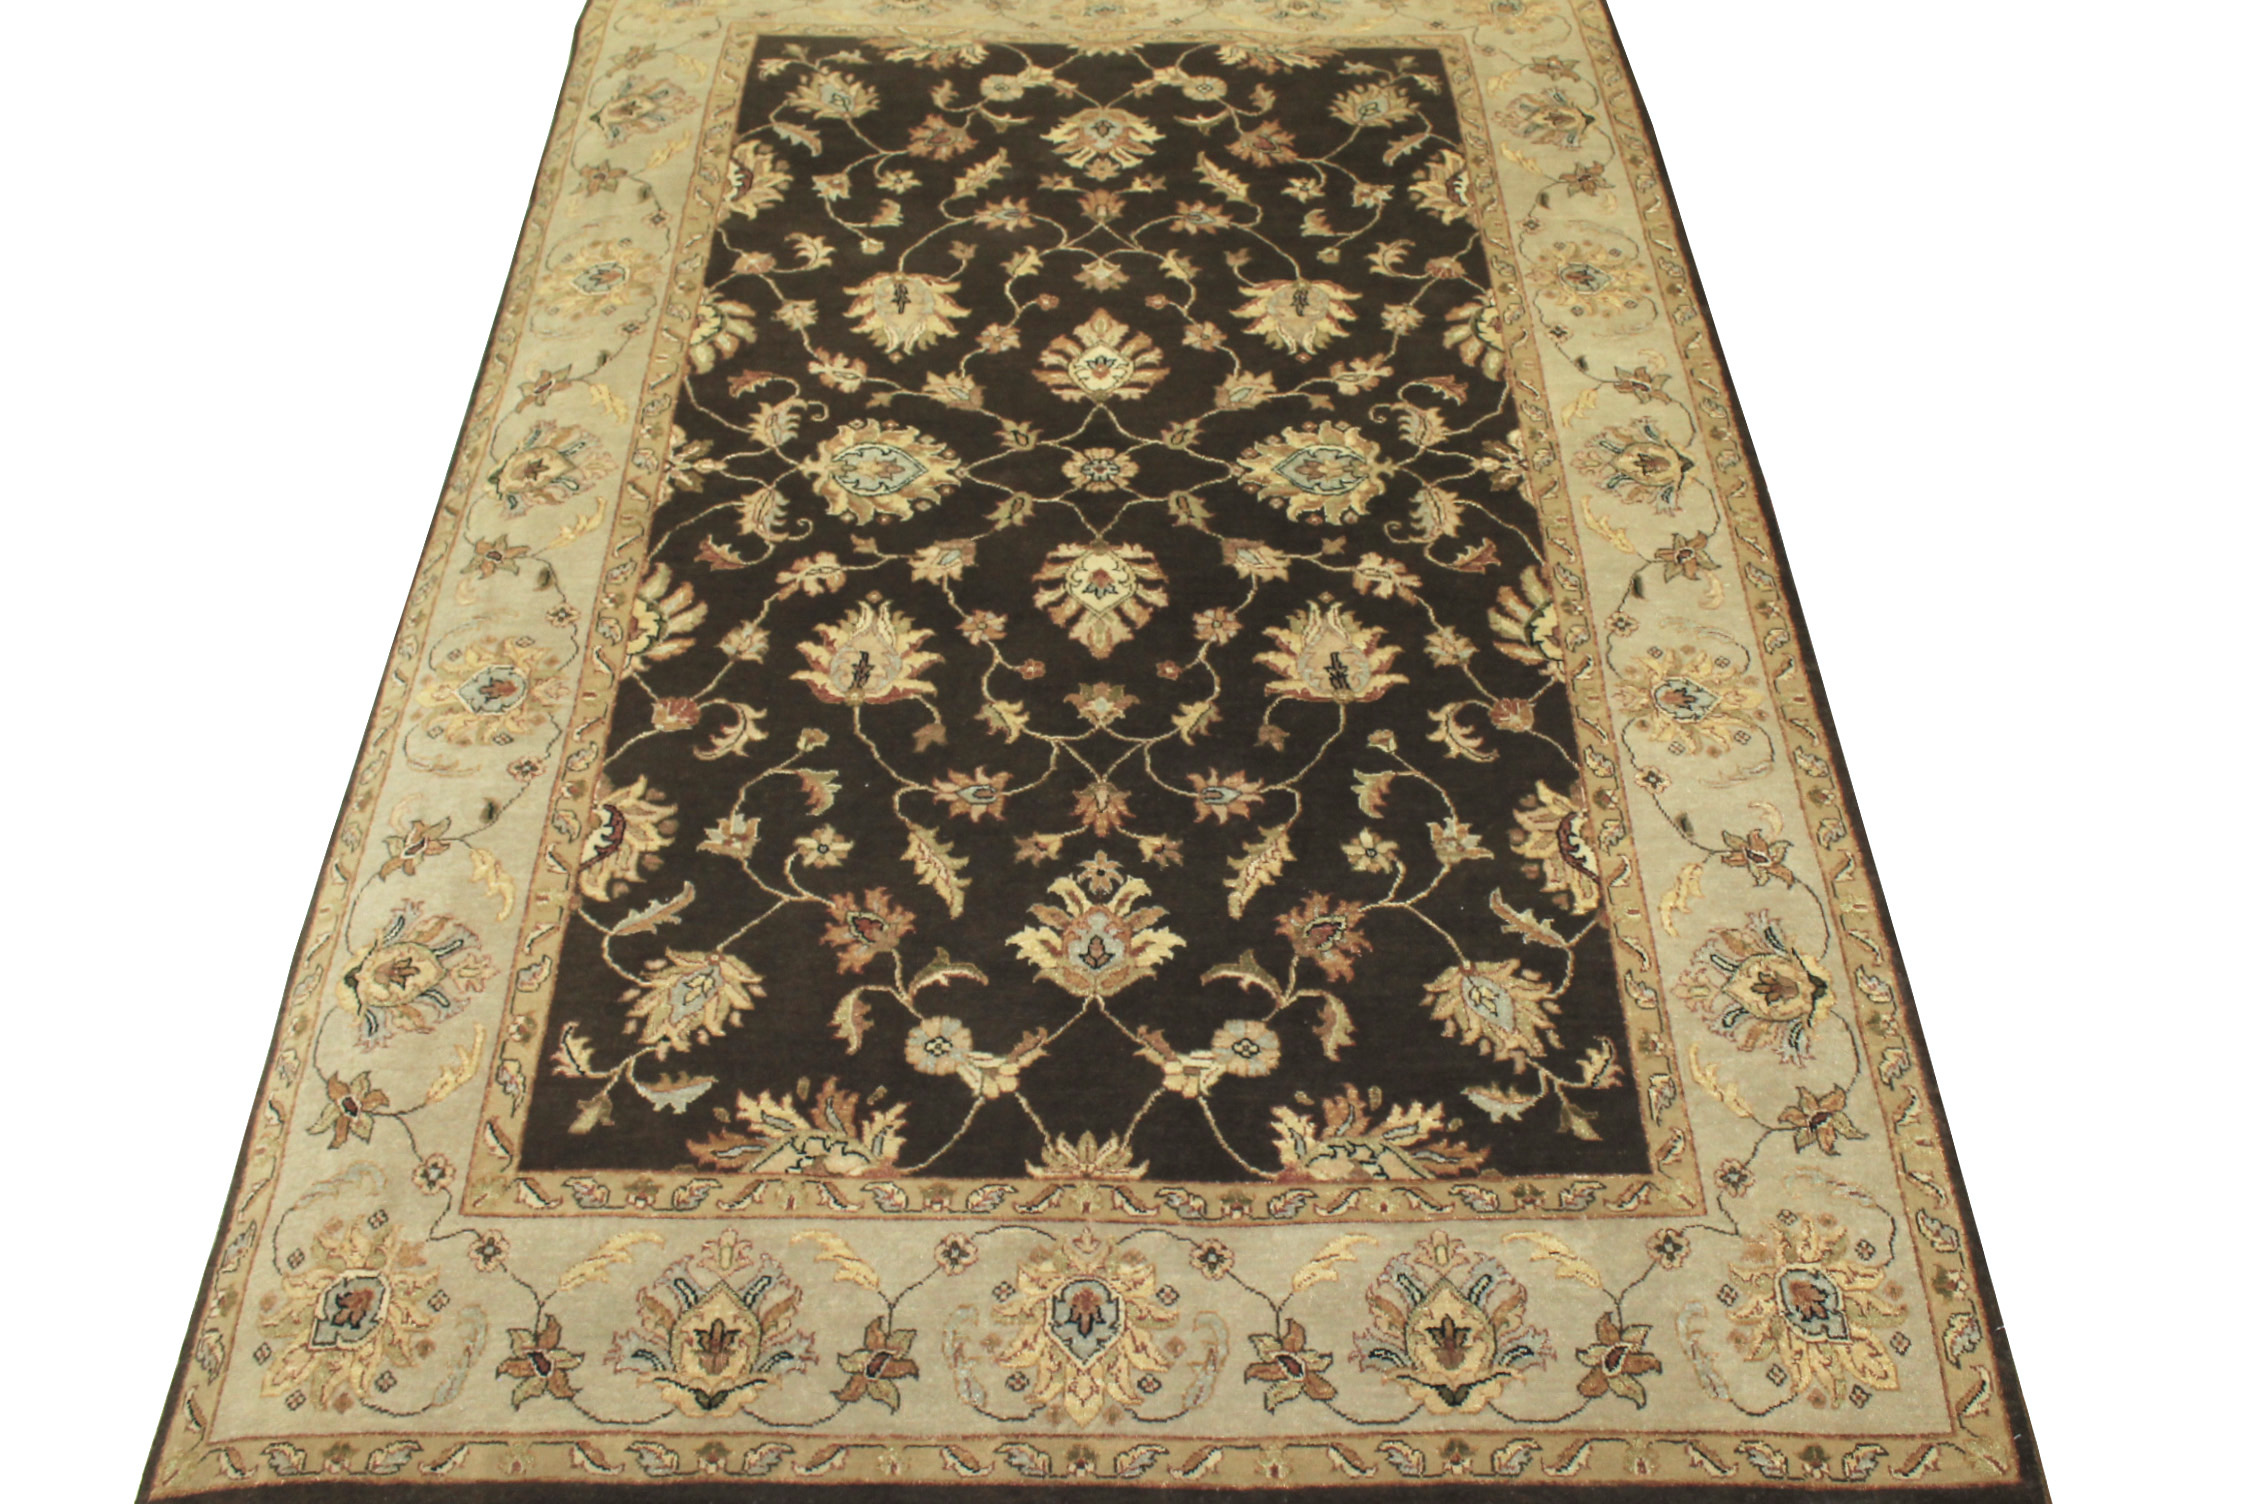 6x9 Traditional Hand Knotted Wool Area Rug - MR12228